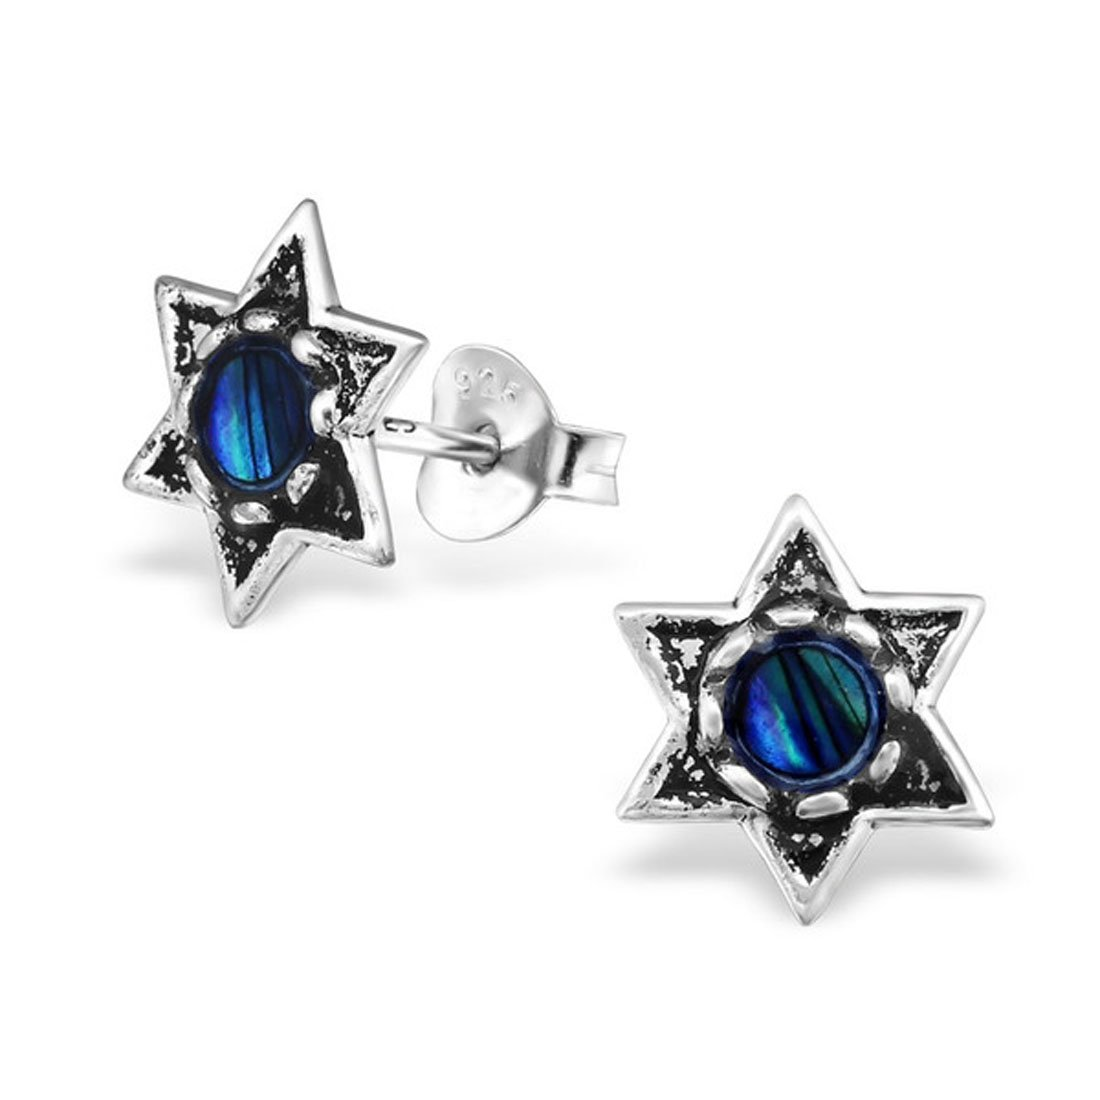 9mm Star of David Stud Earrings Abalone Stering Silver 925 Nickle Free (E30784) (Abalone Dark Blue)